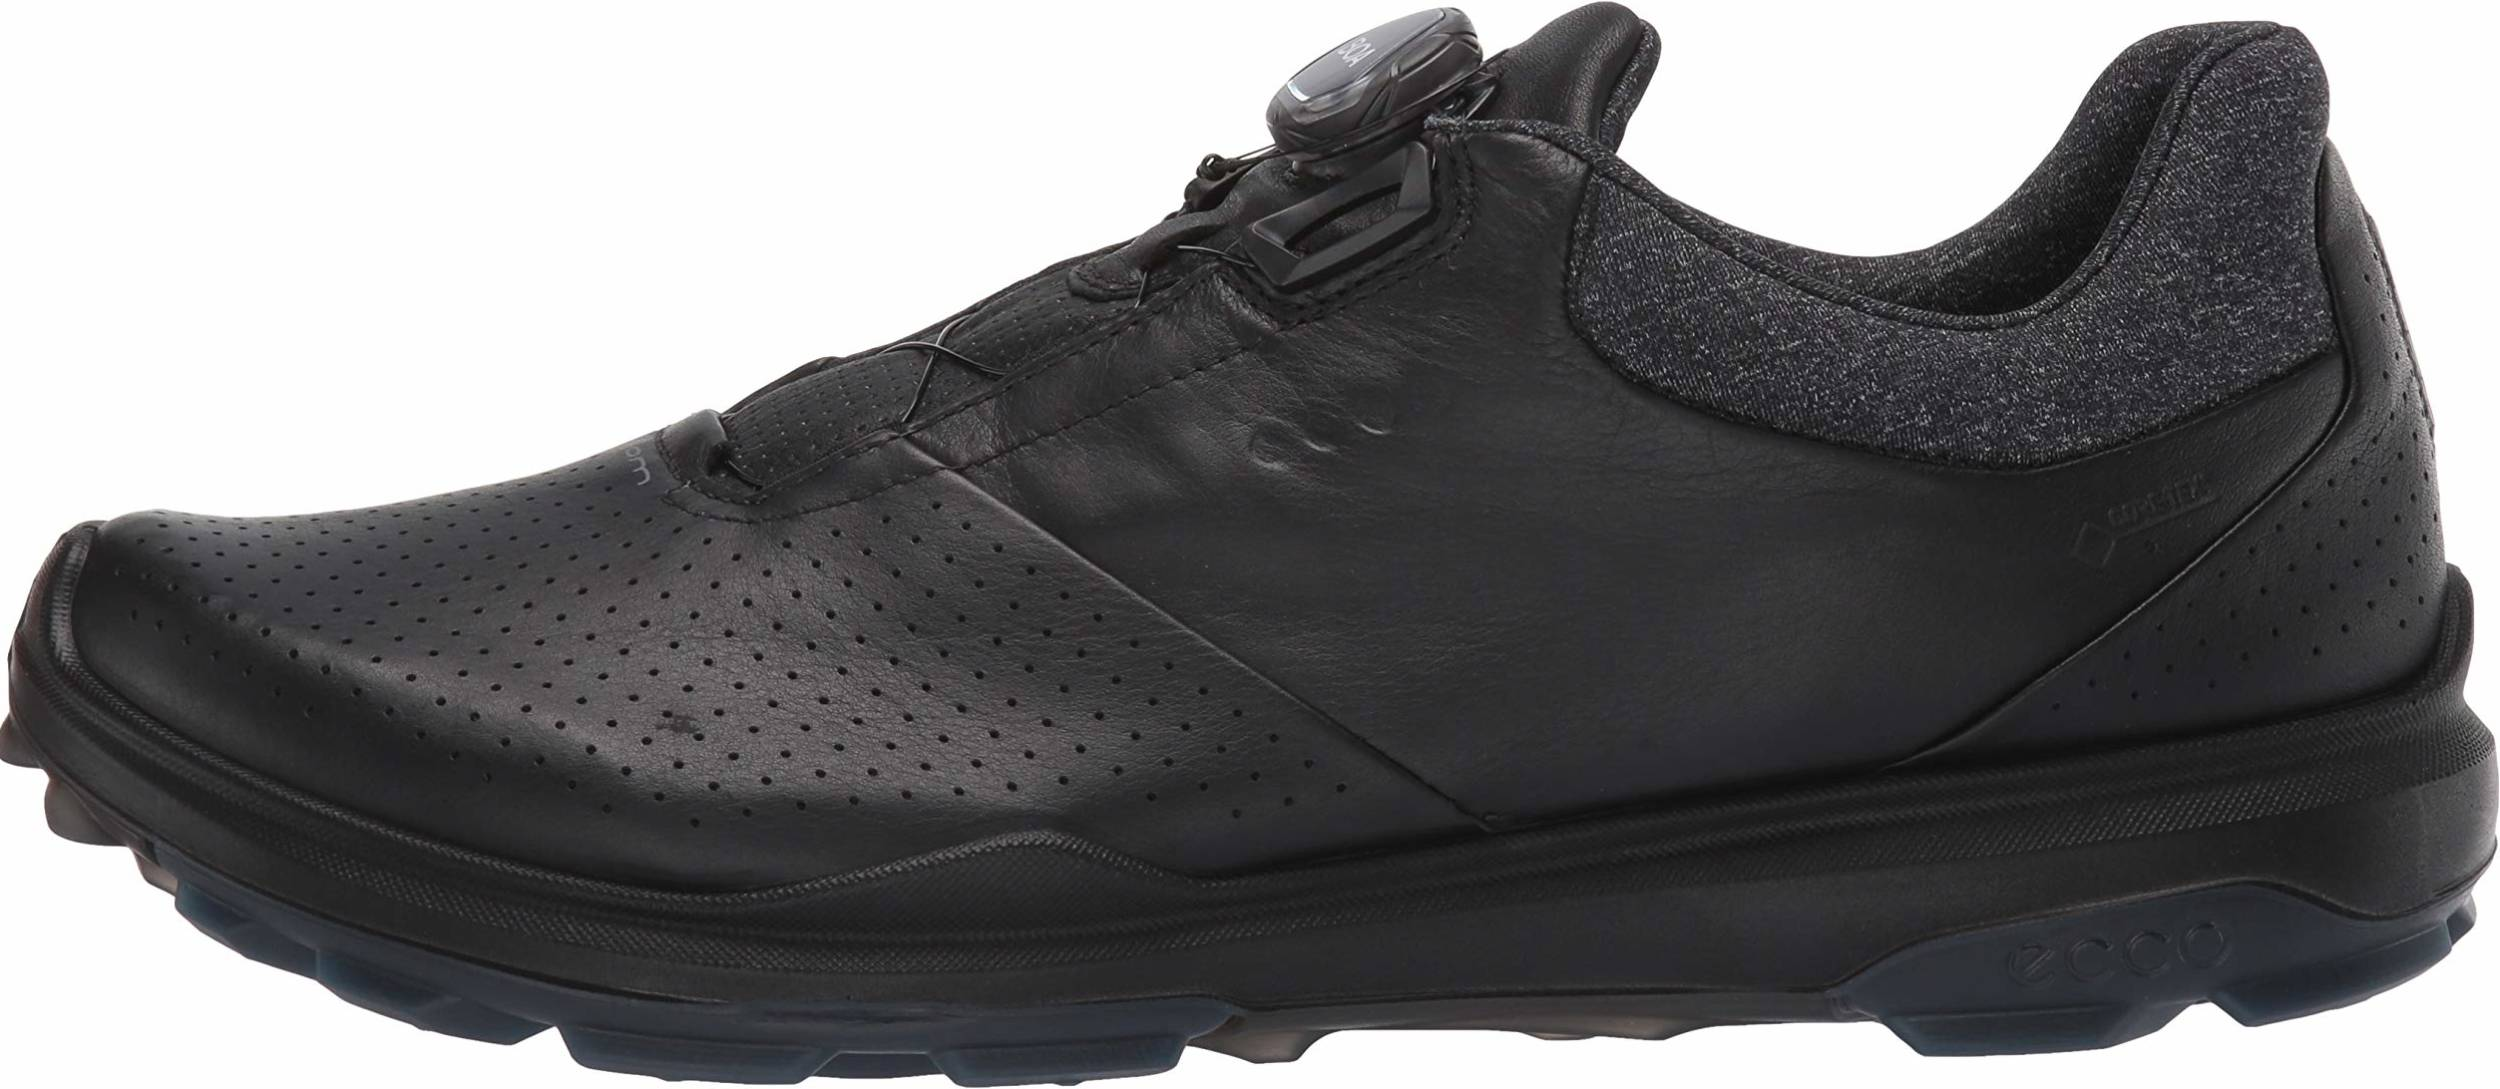 Save 41% on Ecco Golf Shoes (14 Models